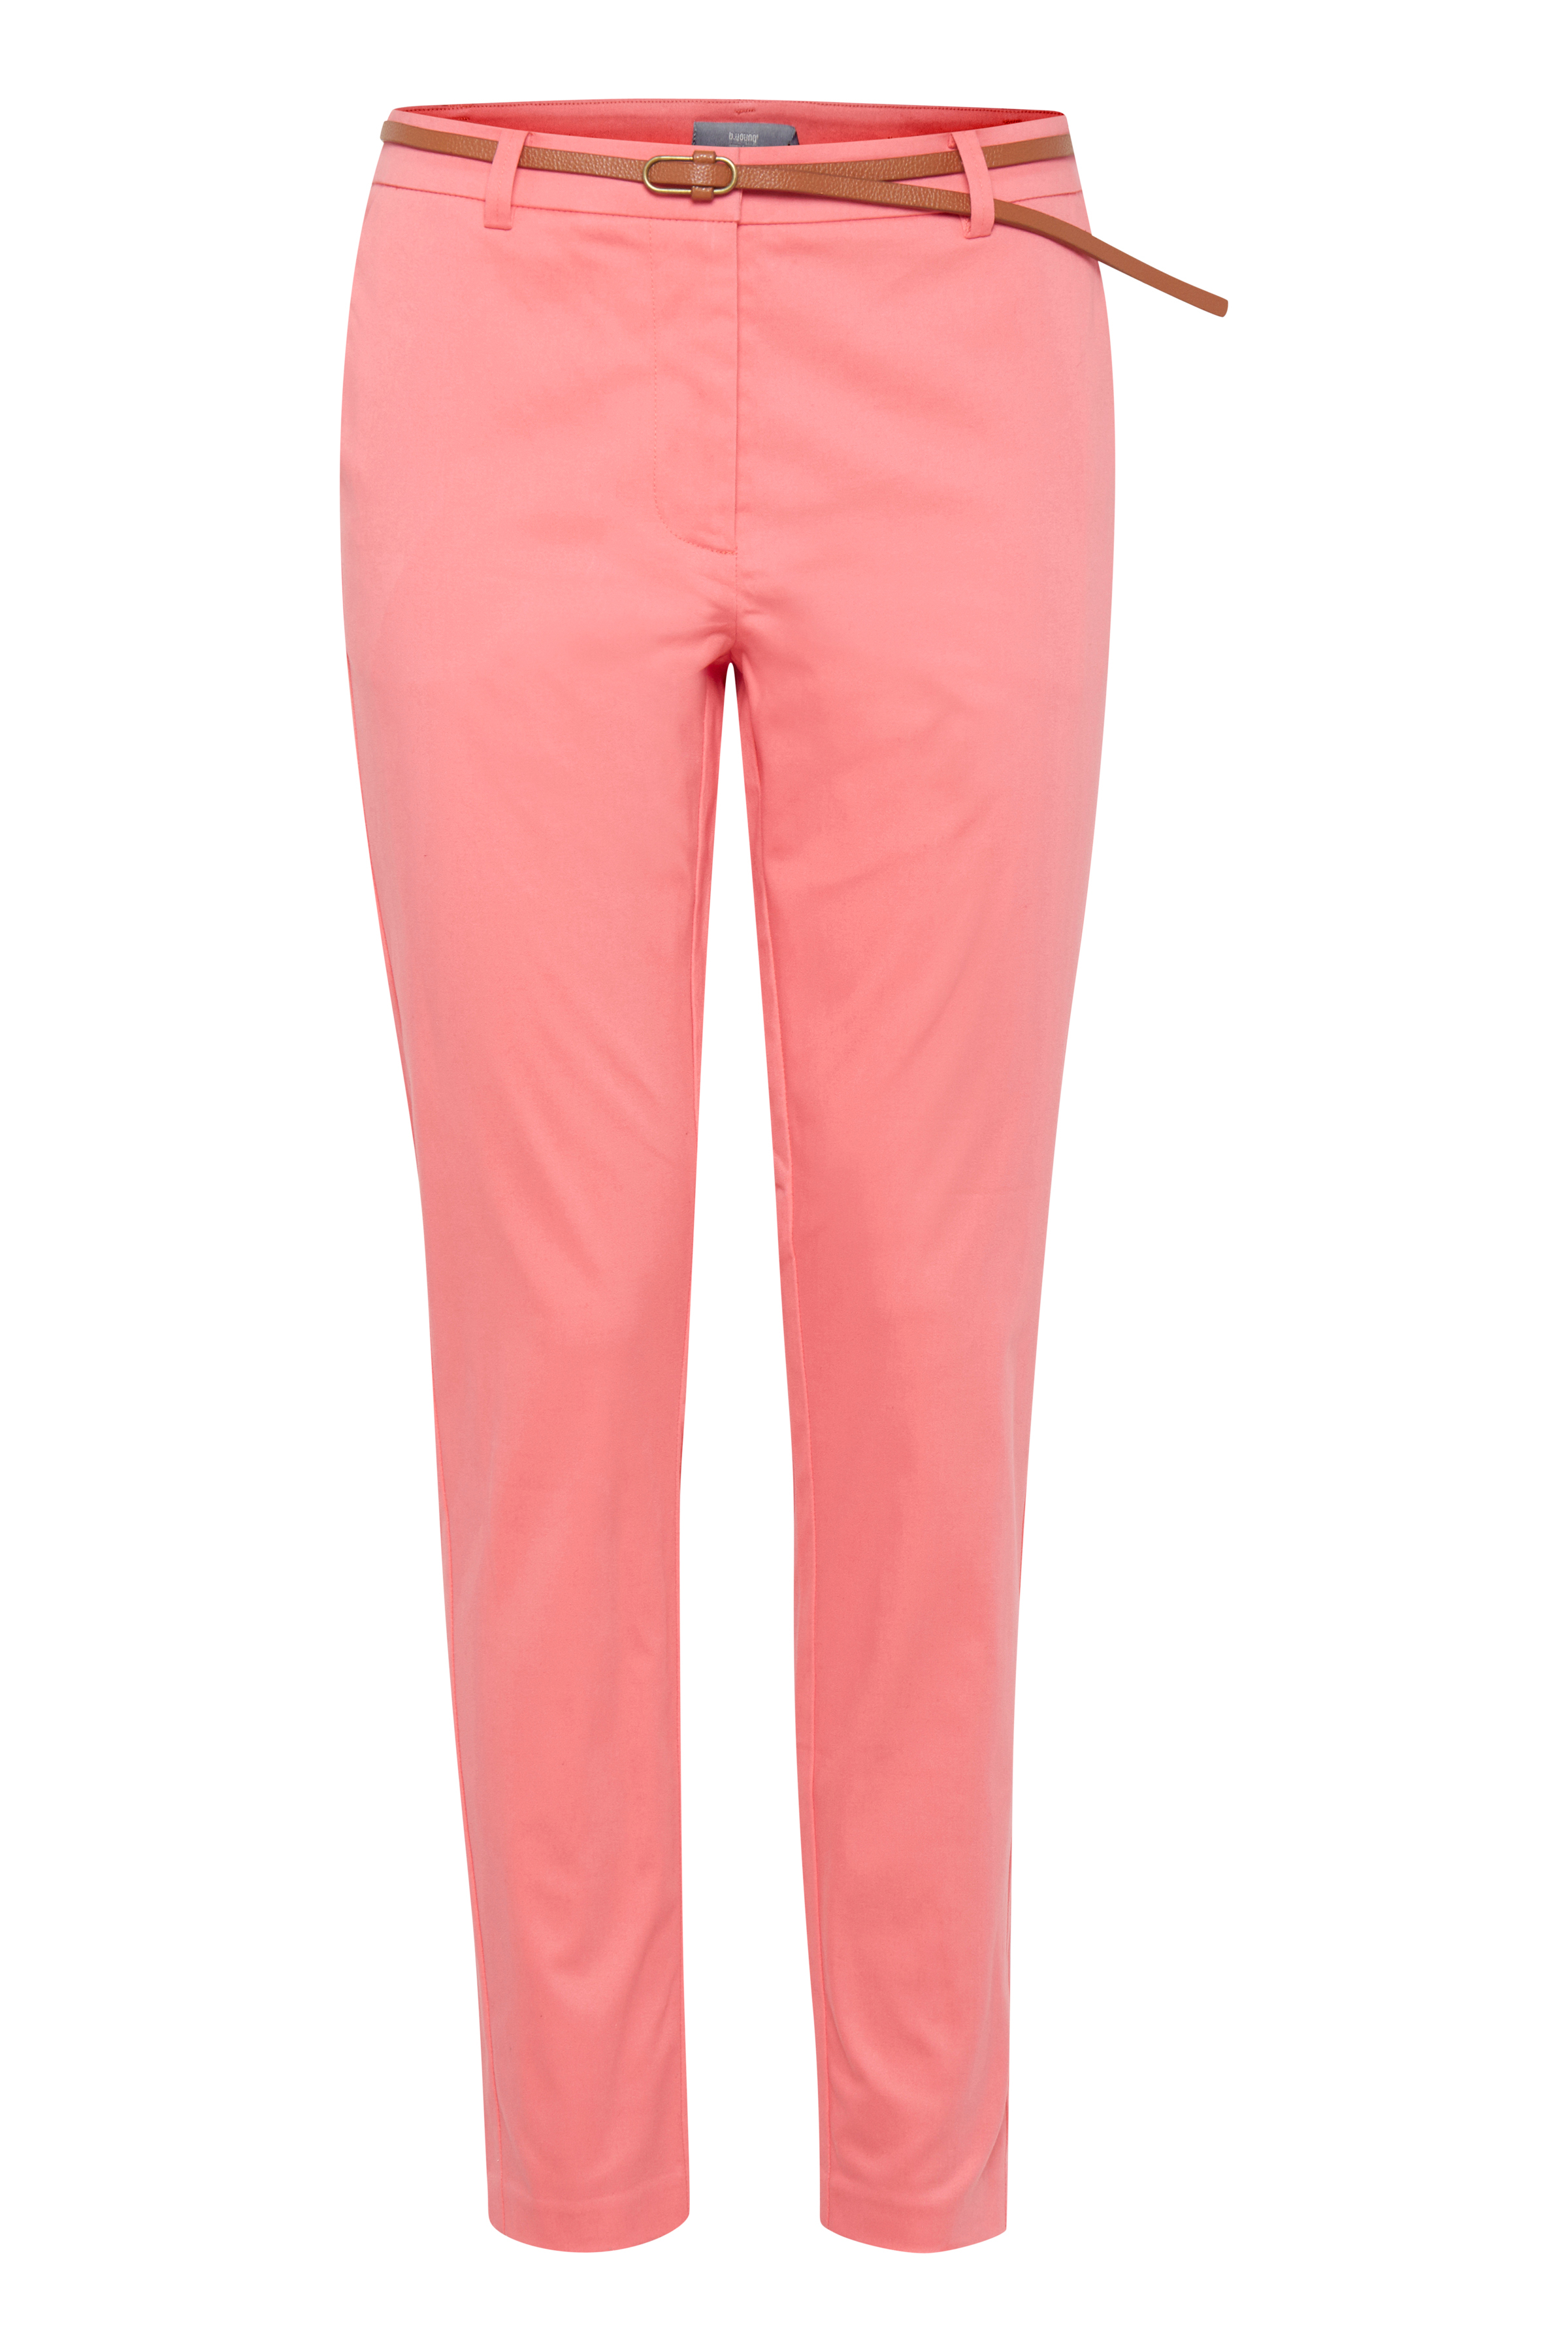 Sunkist Coral Pants Suiting fra b.young – Køb Sunkist Coral Pants Suiting fra str. 34-46 her